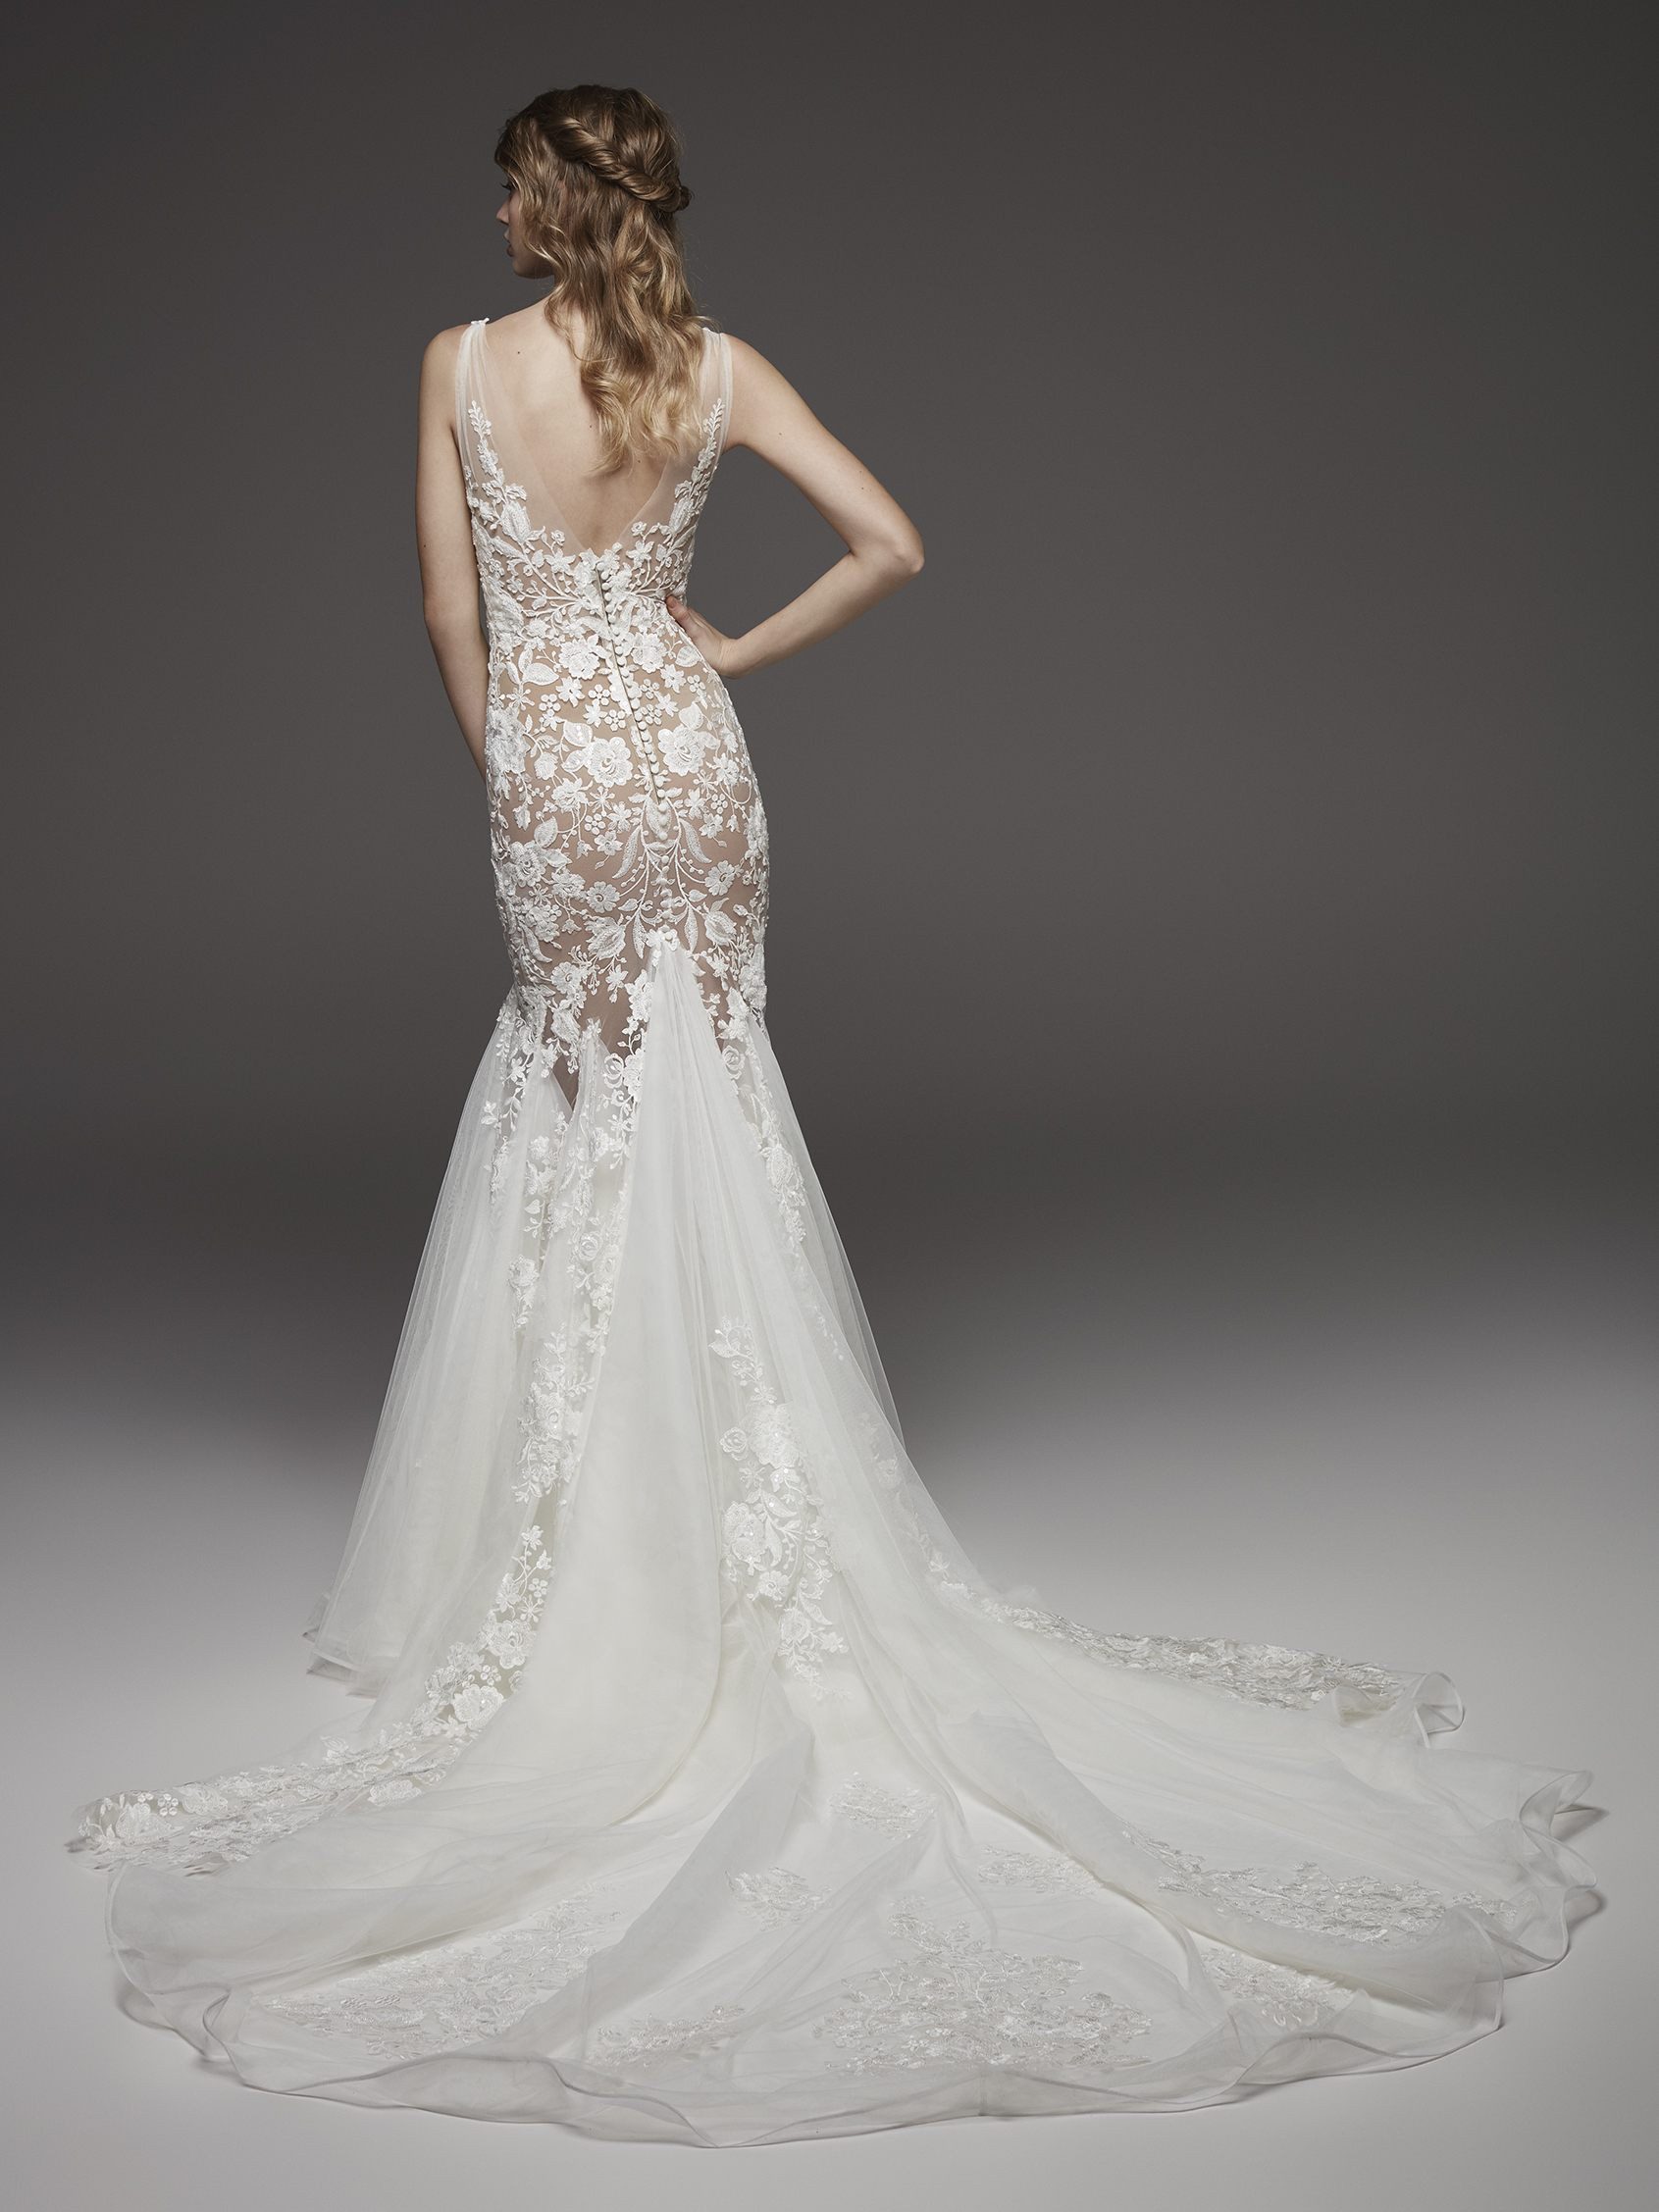 8244b34e5584 Nude-lined Floral Appliqué Chiffon Mermaid Wedding Dress With Bow At  Shoulder | Kleinfeld Bridal